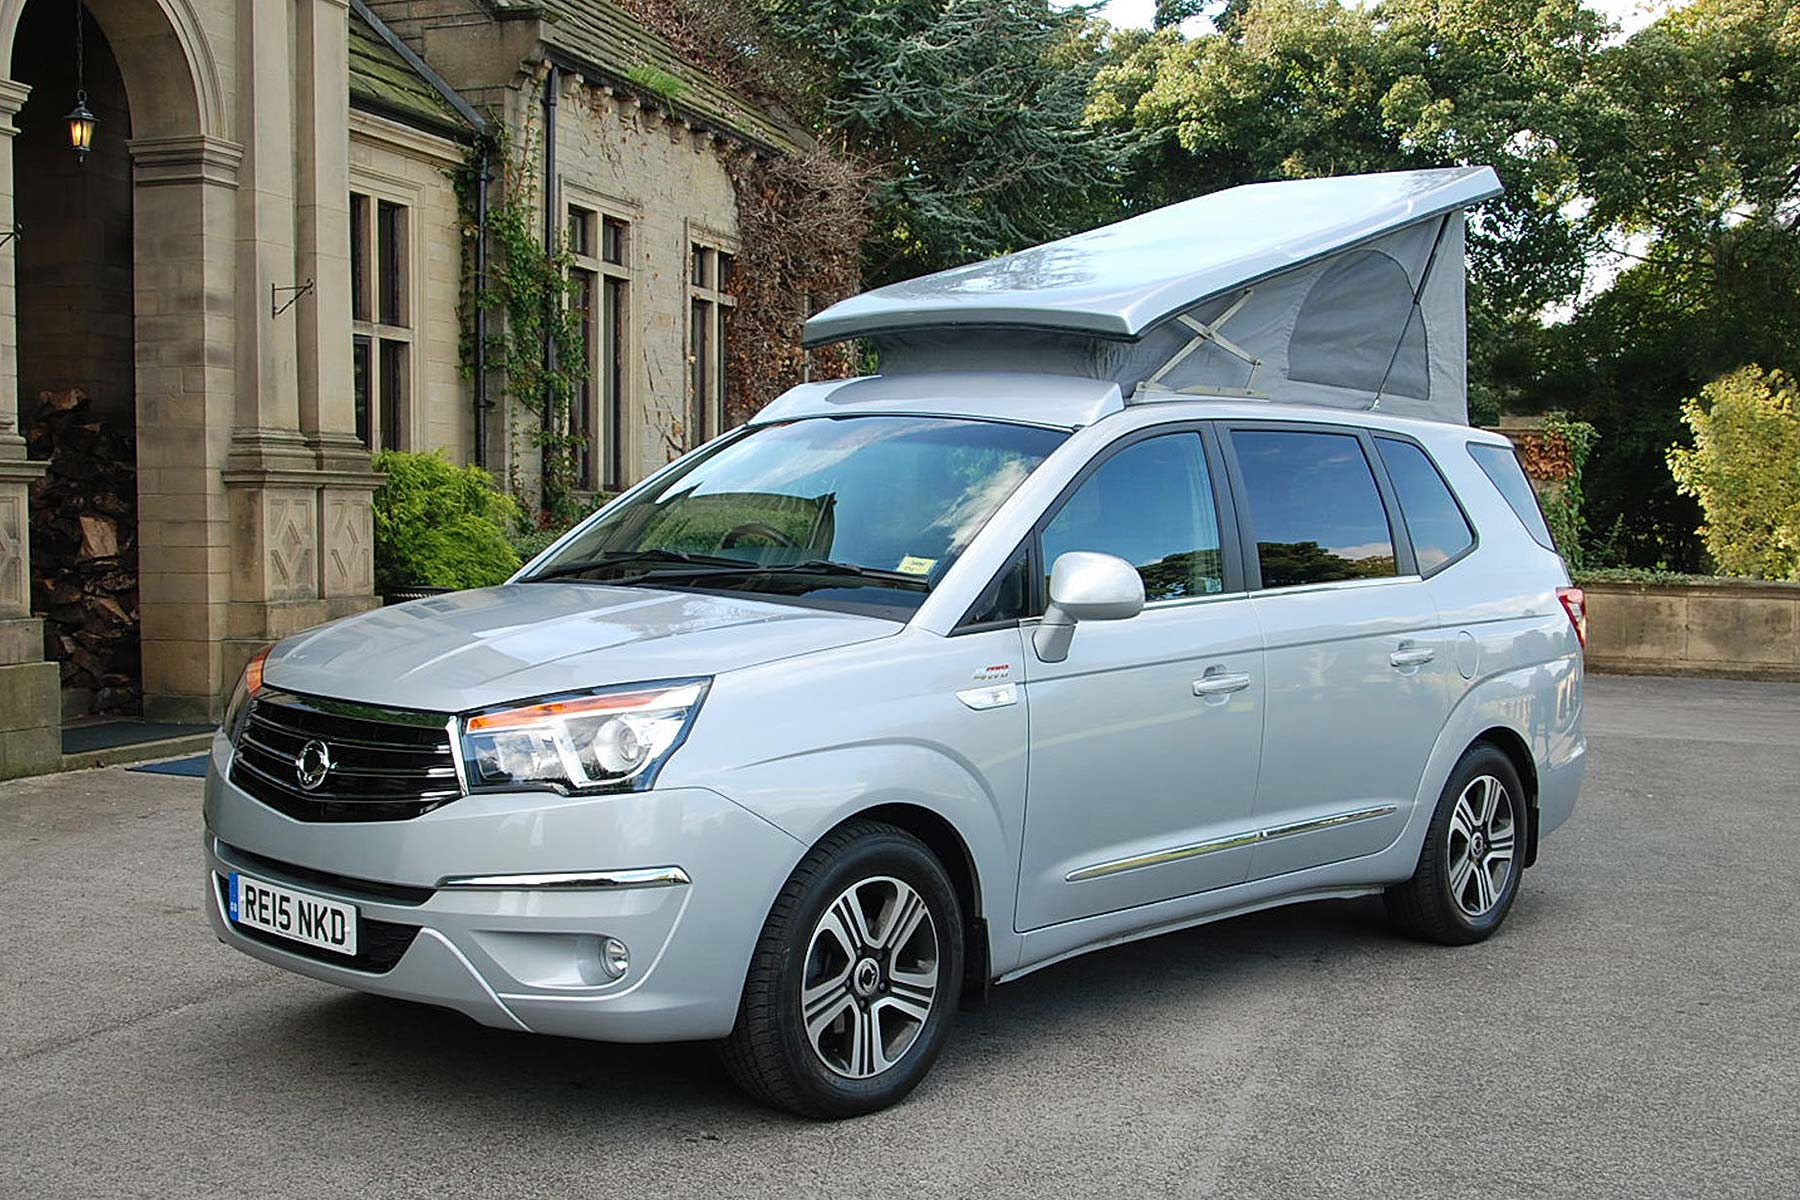 SsangYong Turismo Tourist Camper